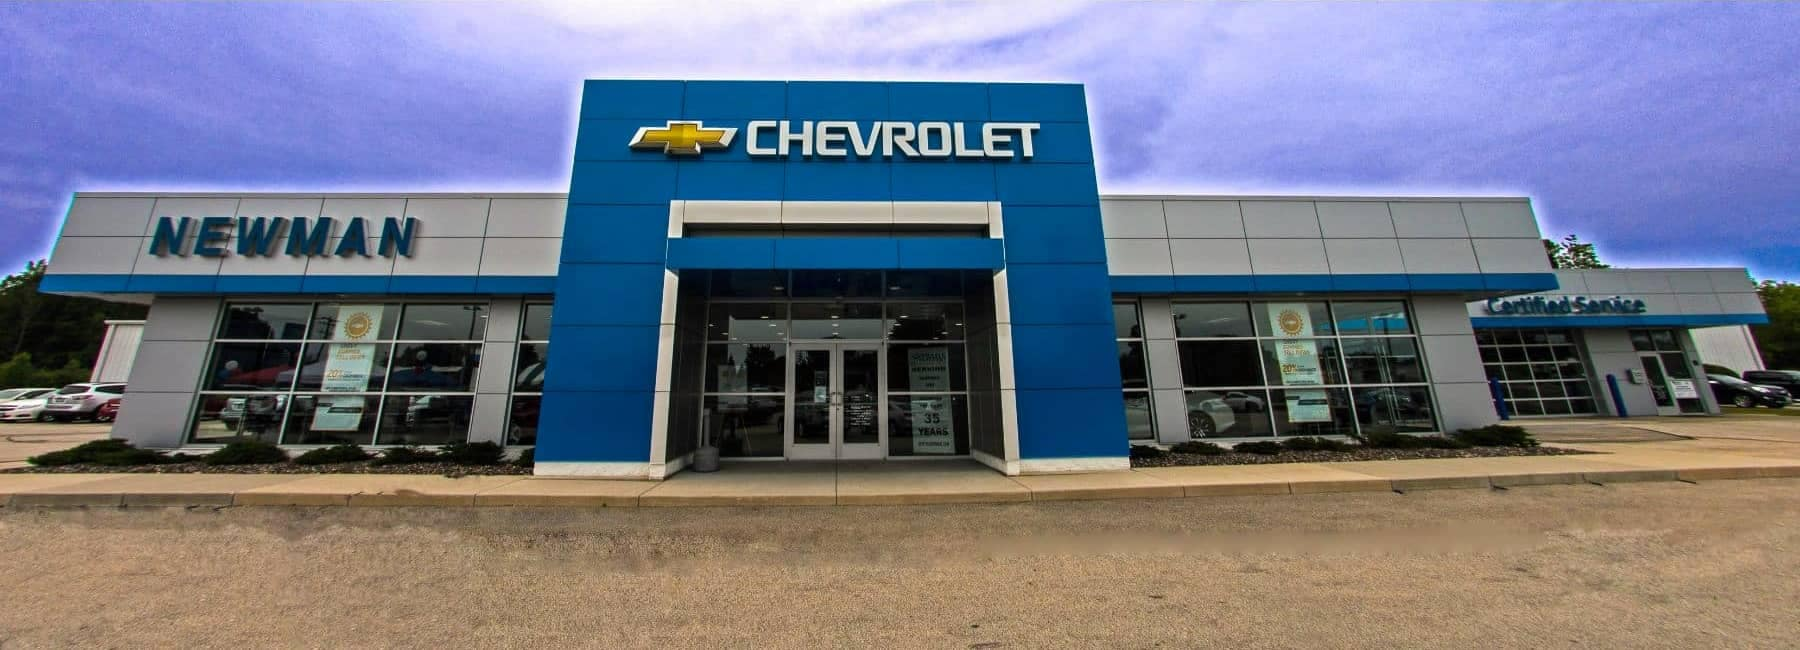 Newman Chevrolet Storefront